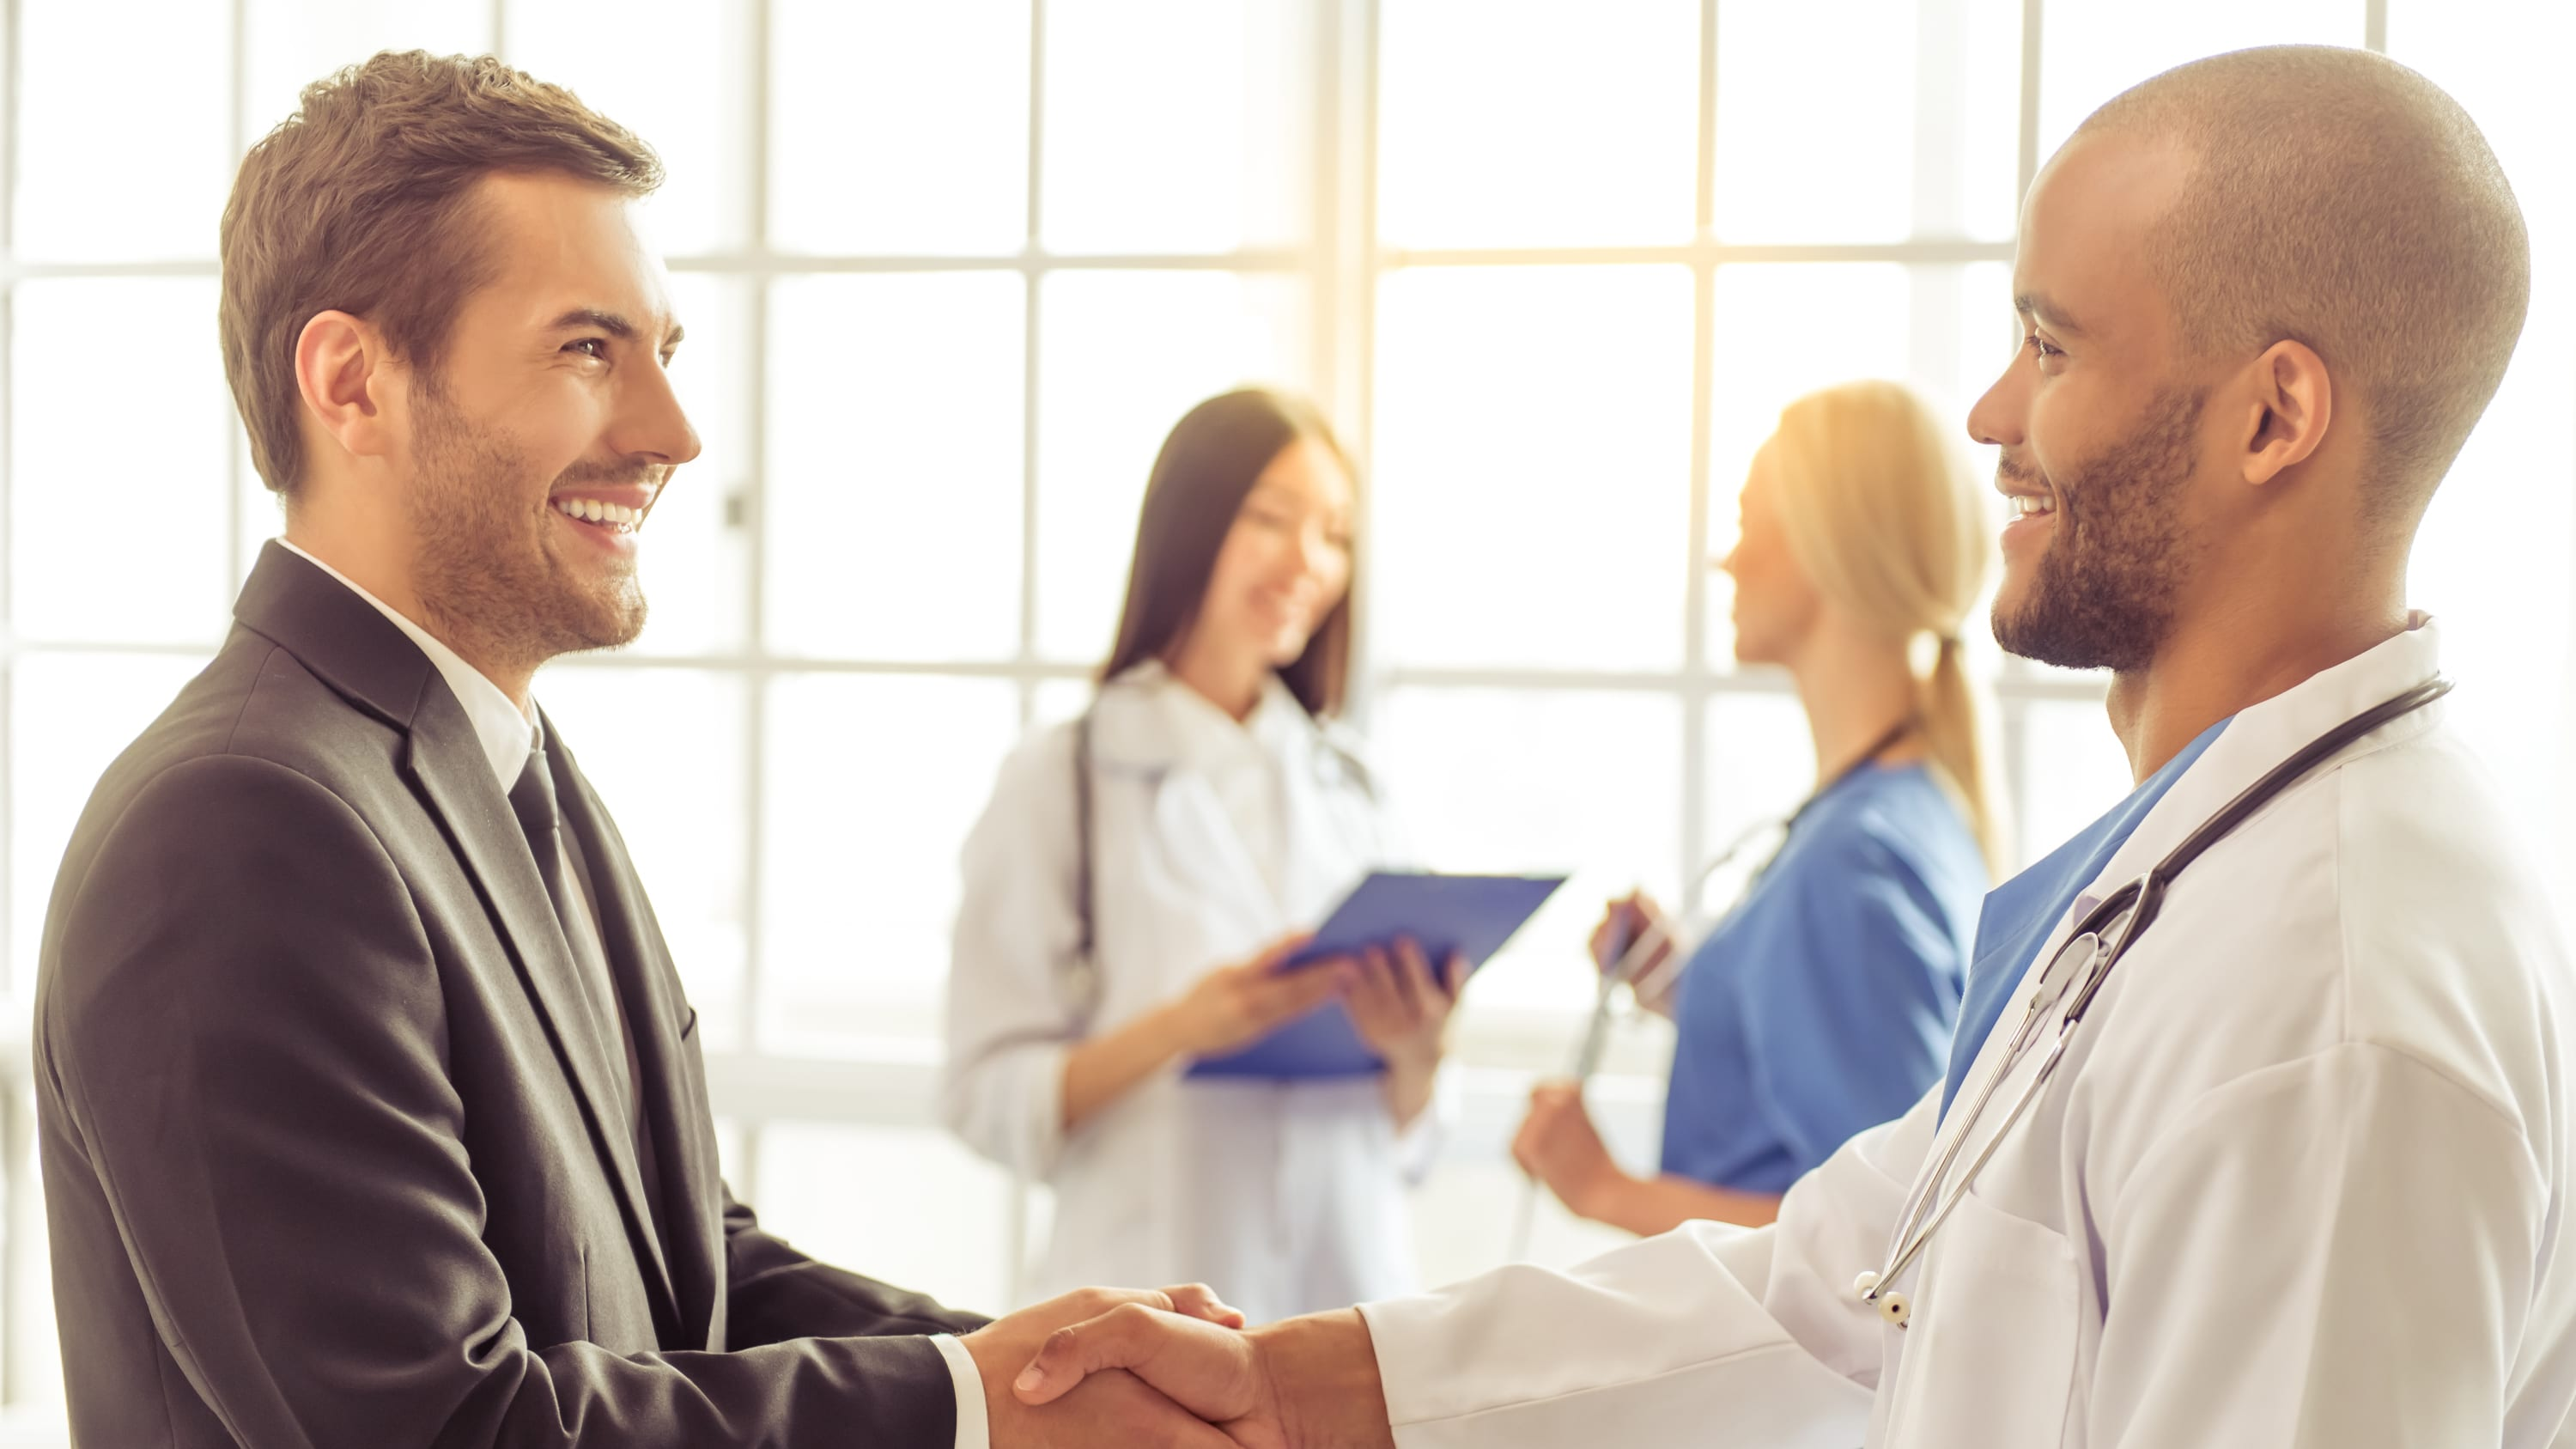 A volunteer for a clinical trial shakes a doctor's hand.